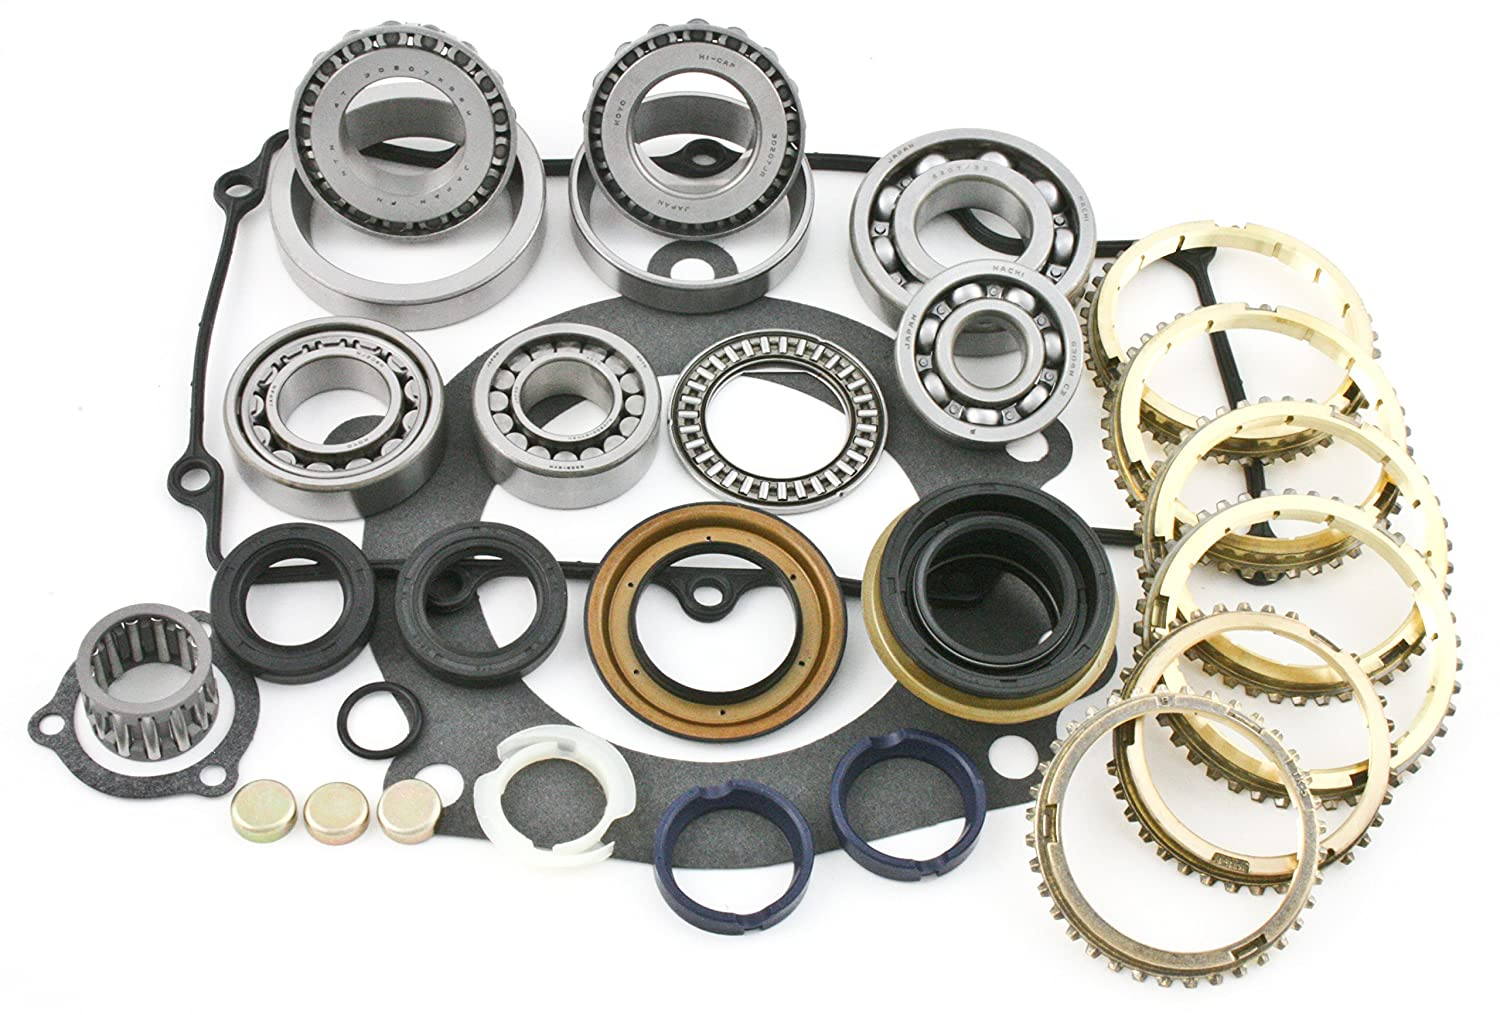 Transparts Warehouse BK247WS Ford M5R1 M5OD 5 Speed transmission Kit with rings